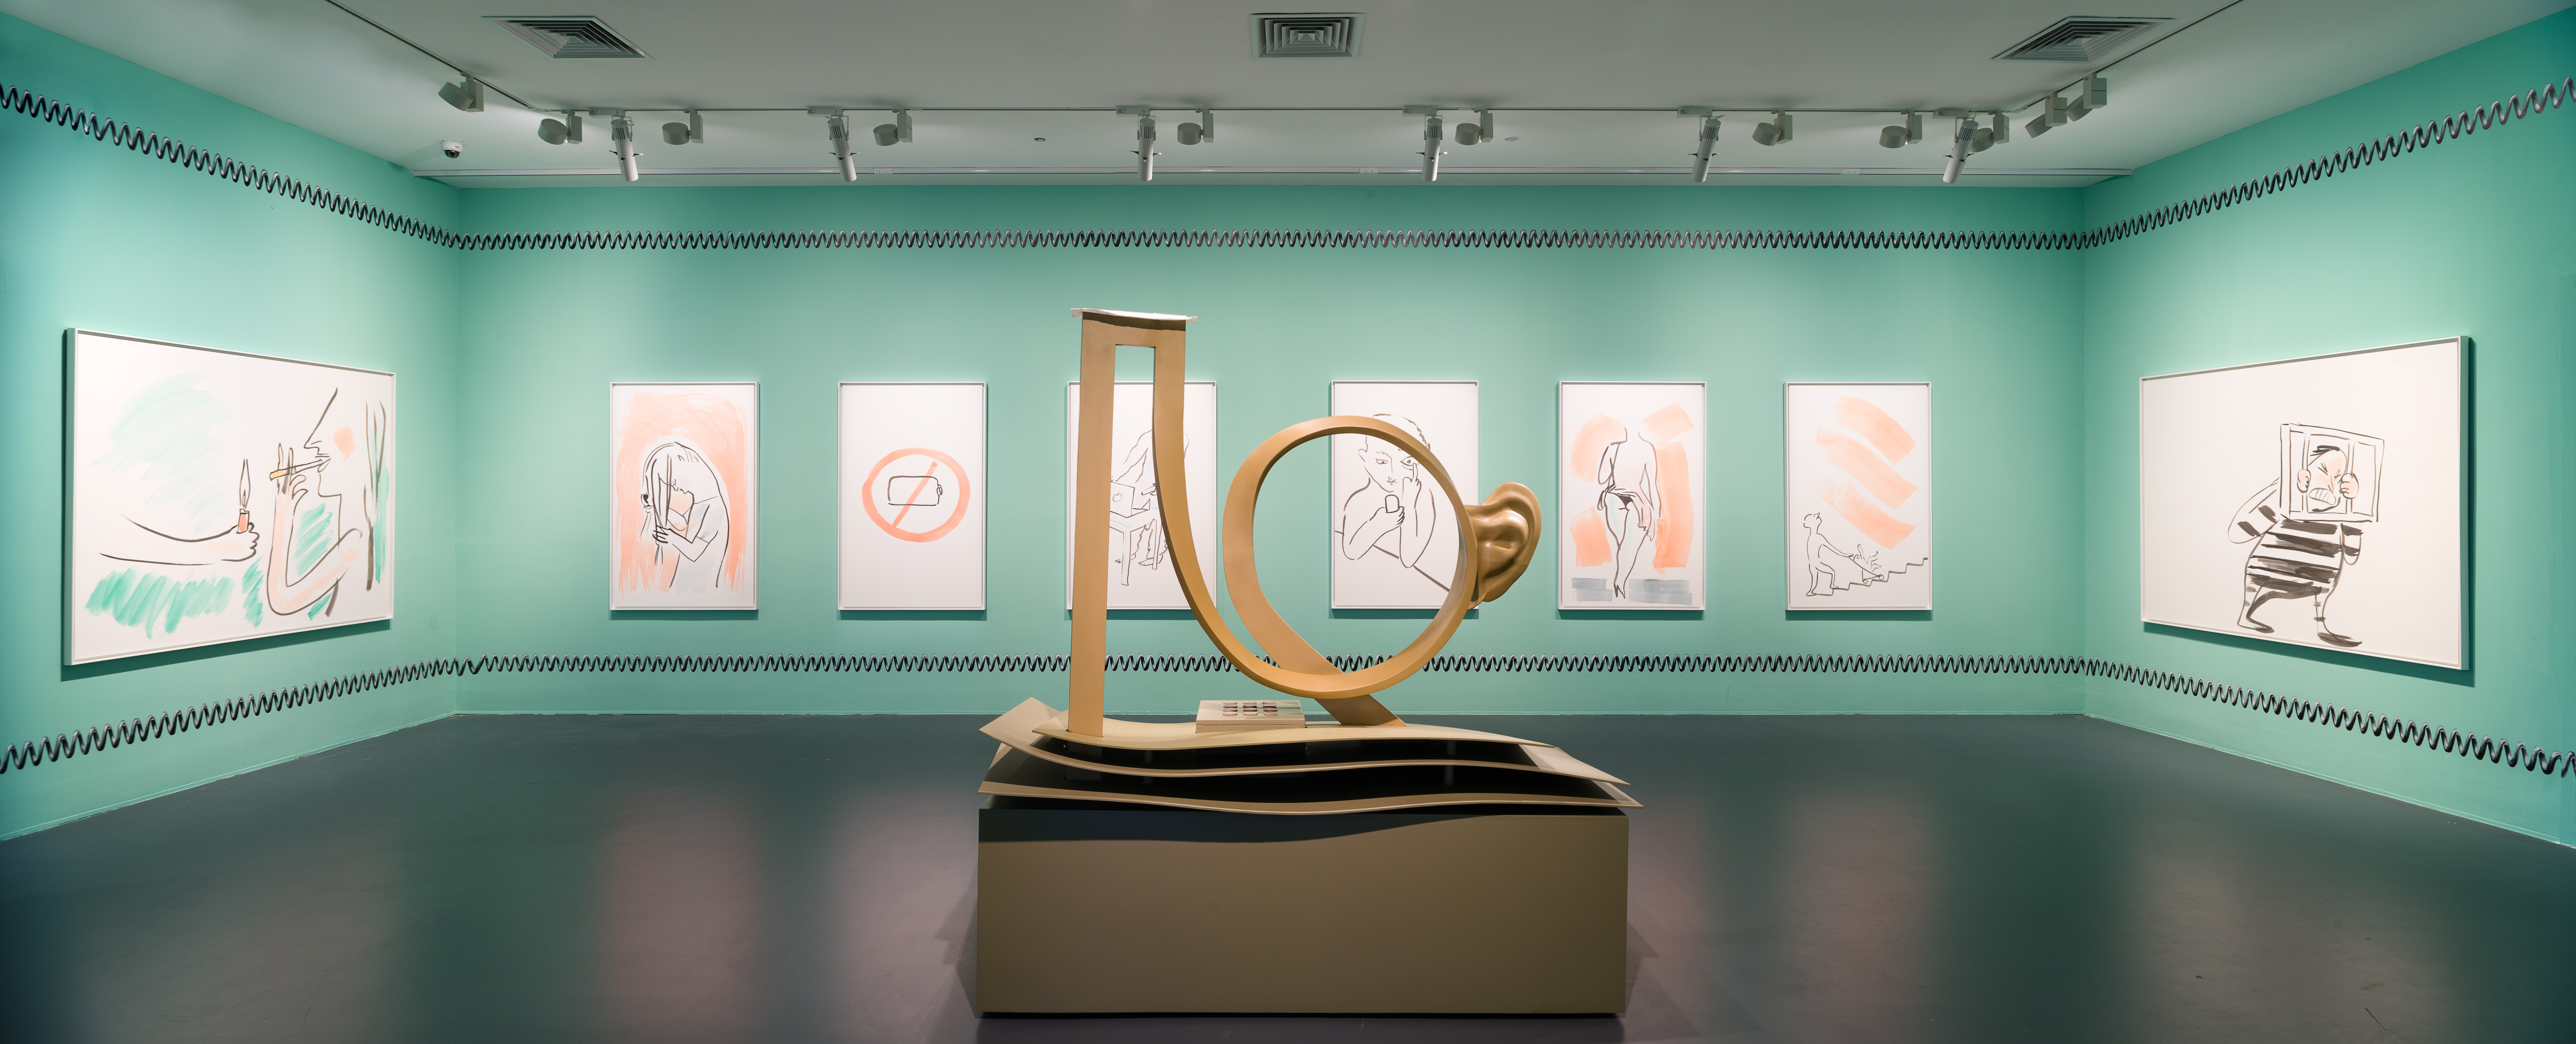 Camille Henrot, Exhibition view at OVERPOP at the Yuz Museum, Shanghai. Image courtesy Yuz Museum.